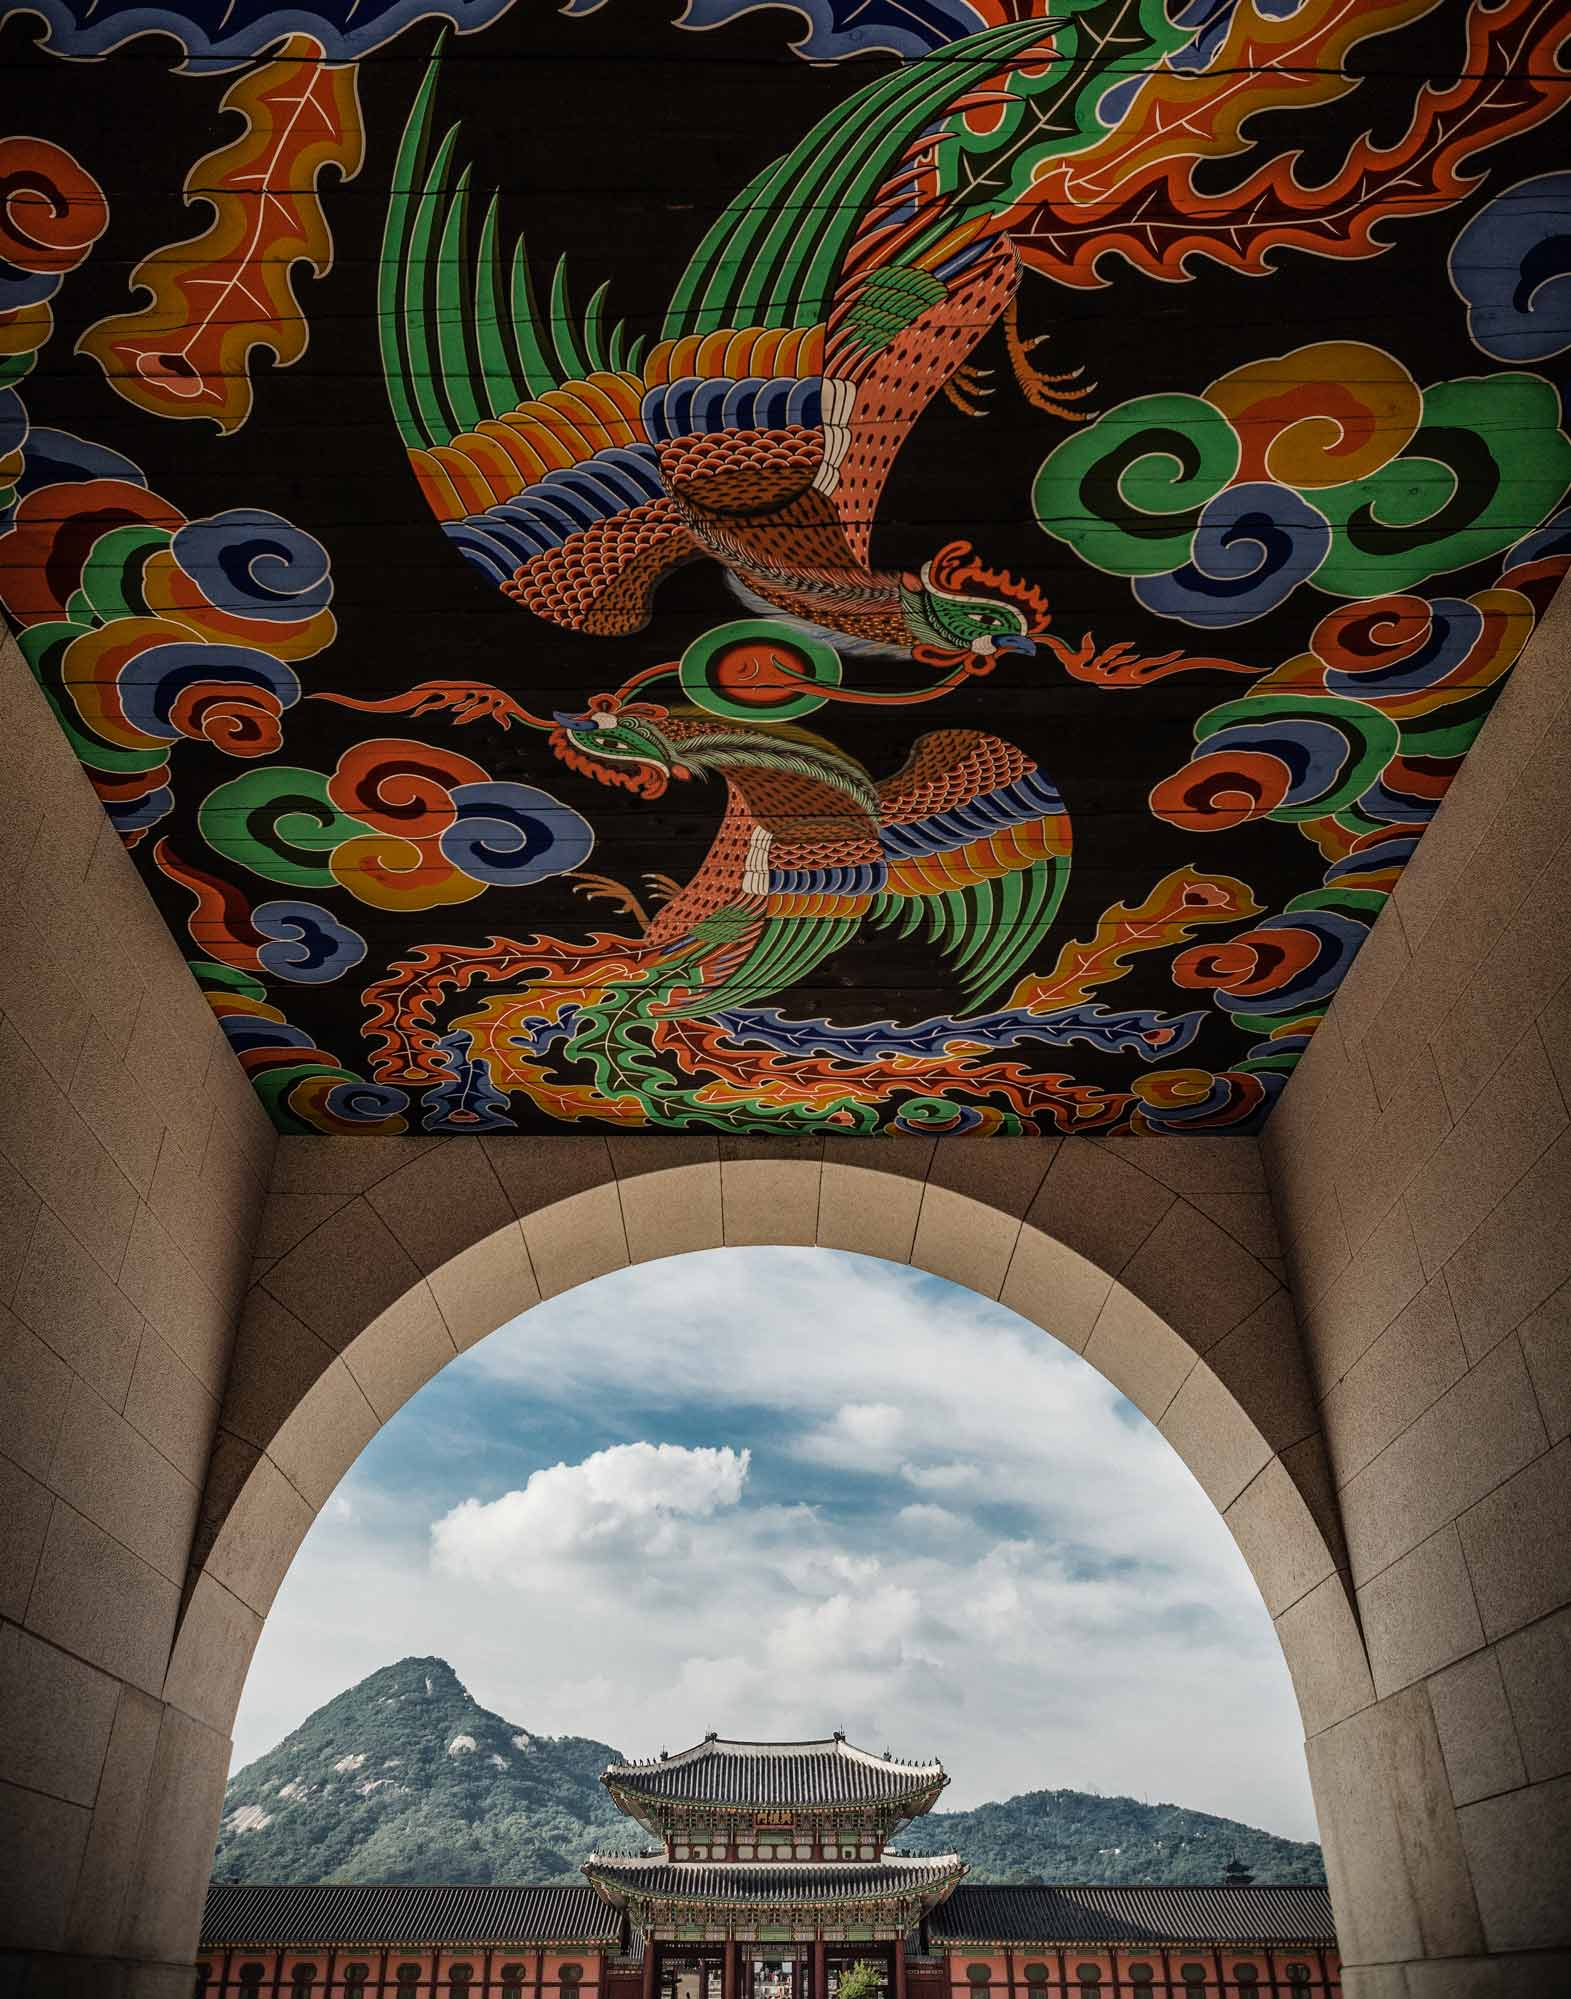 Ceiling-Mural-Entrance-2000px.jpg